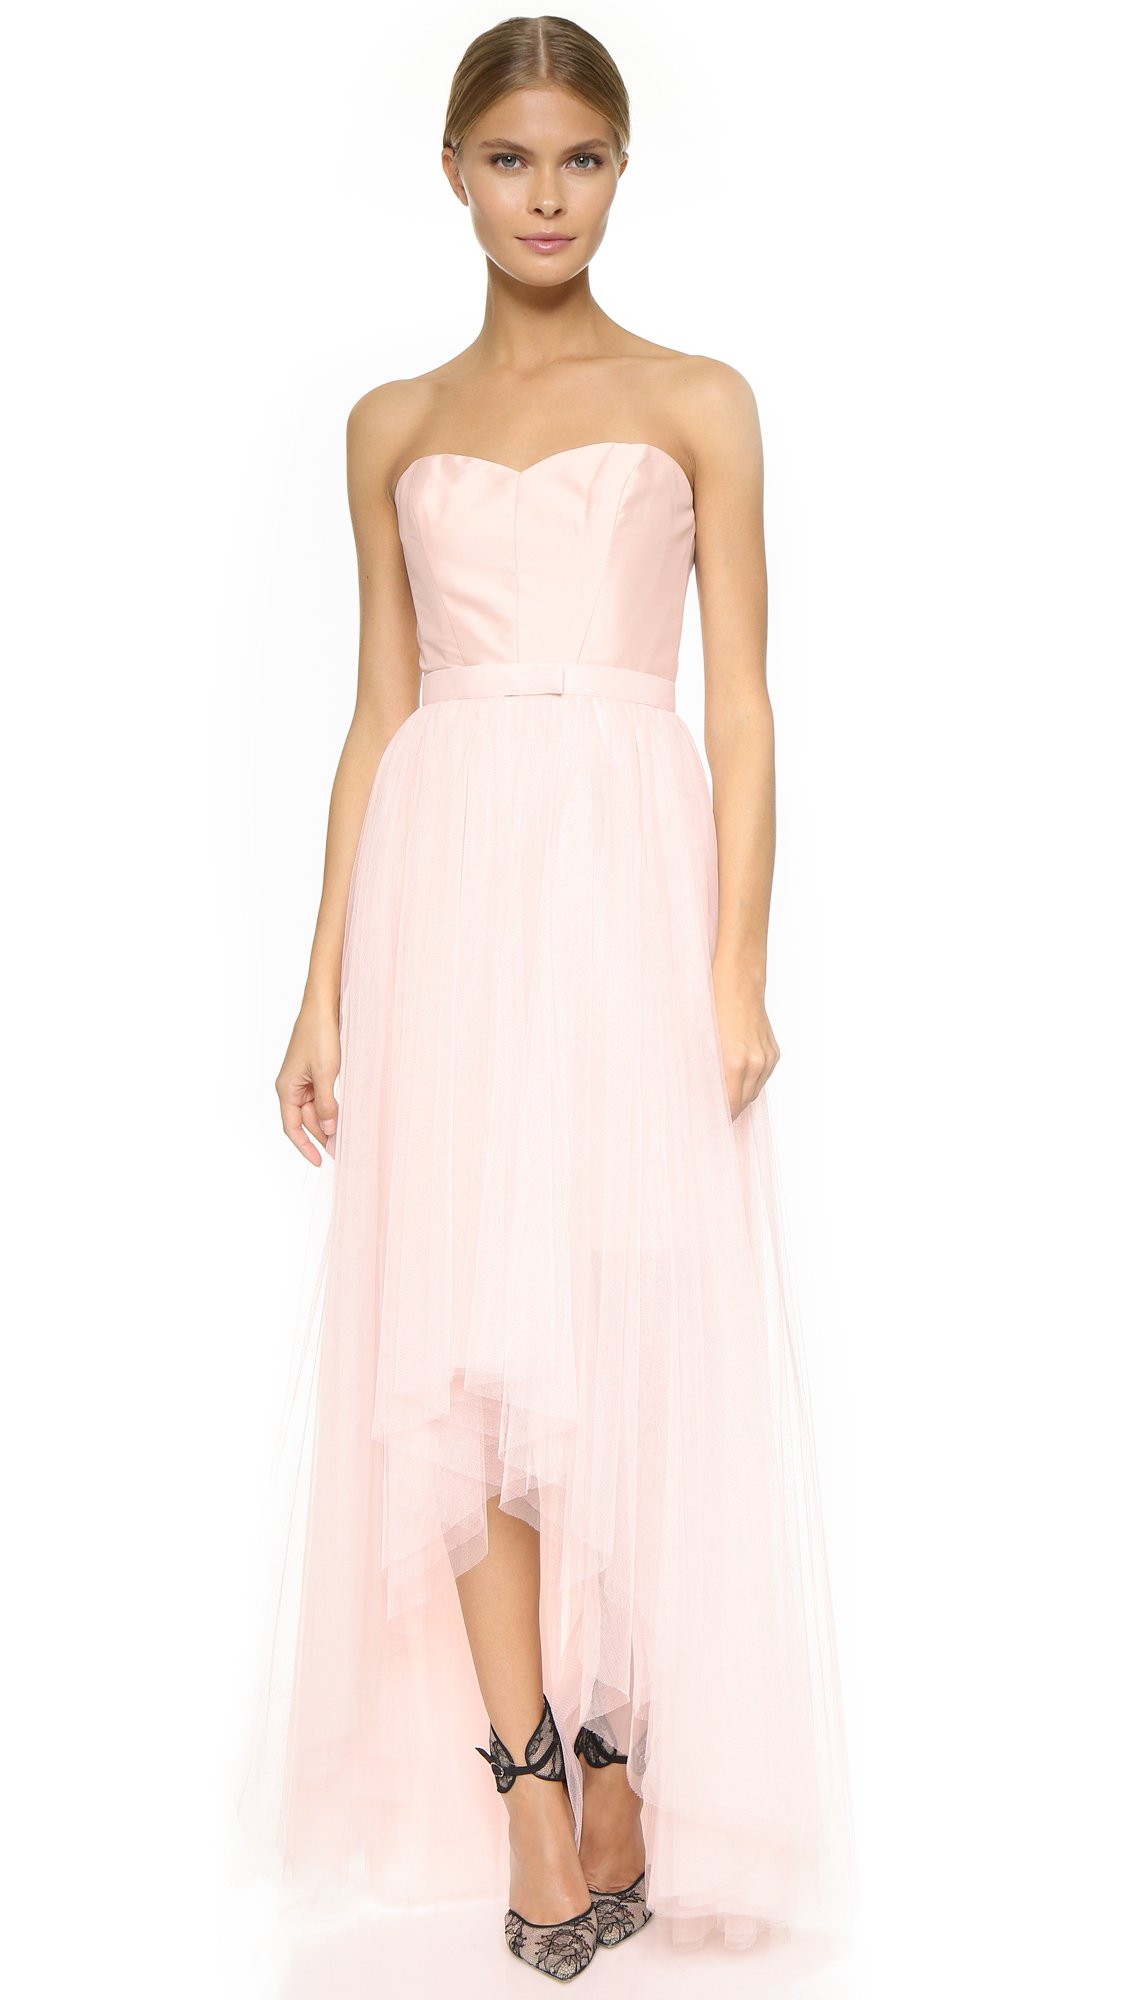 Monique Lhuillier Bridesmaids Strapless Dress with Removable Skirt - Blush